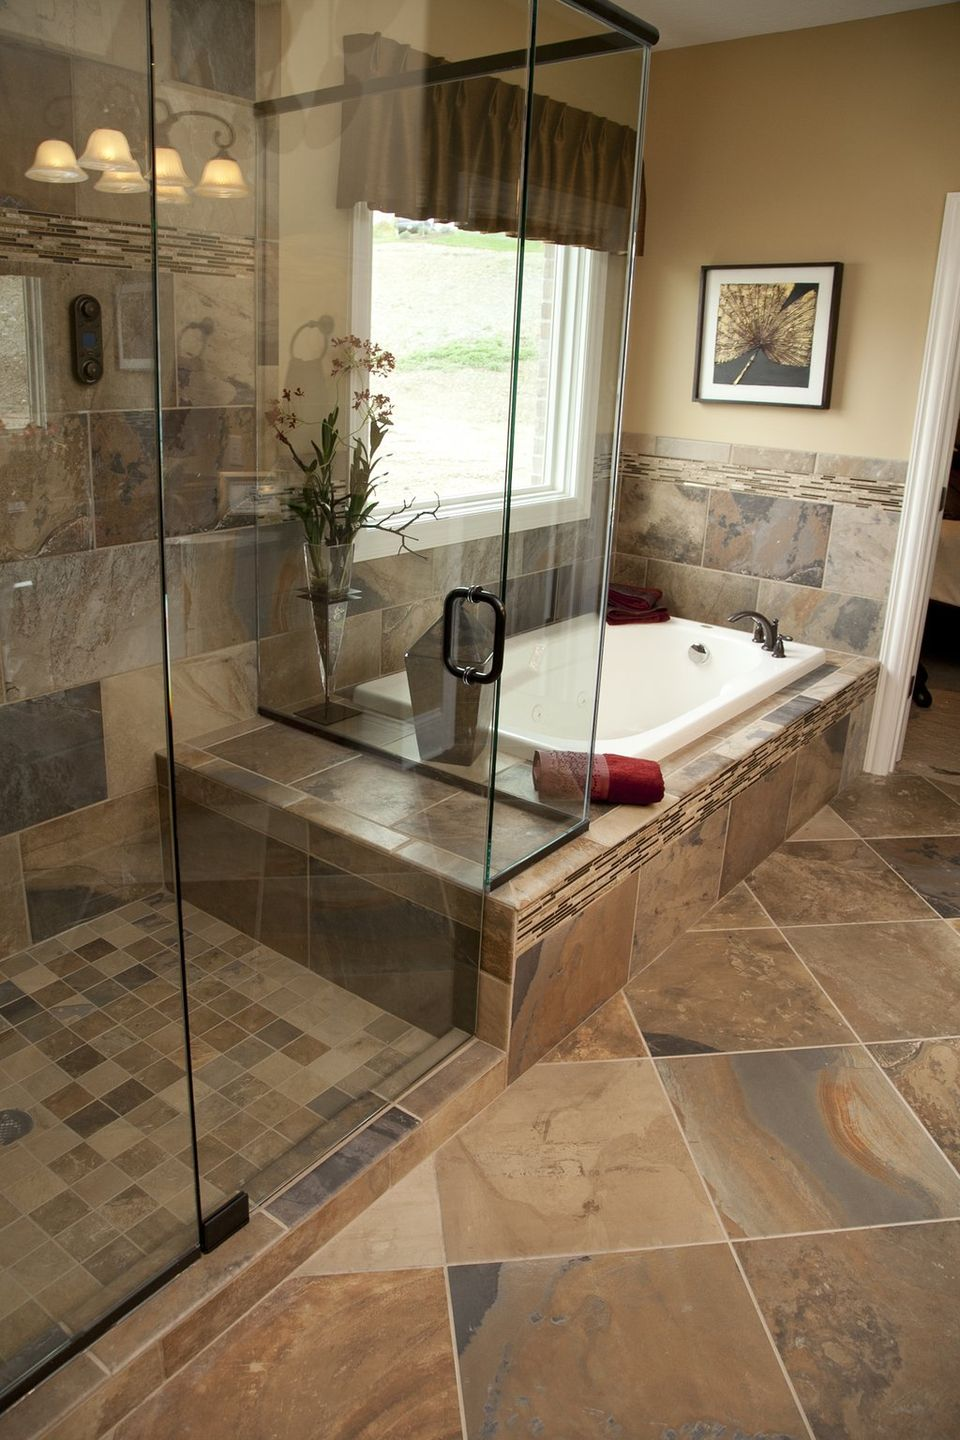 33 stunning pictures and ideas of natural stone bathroom floor tiles Bathroom tile design ideas for small bathrooms